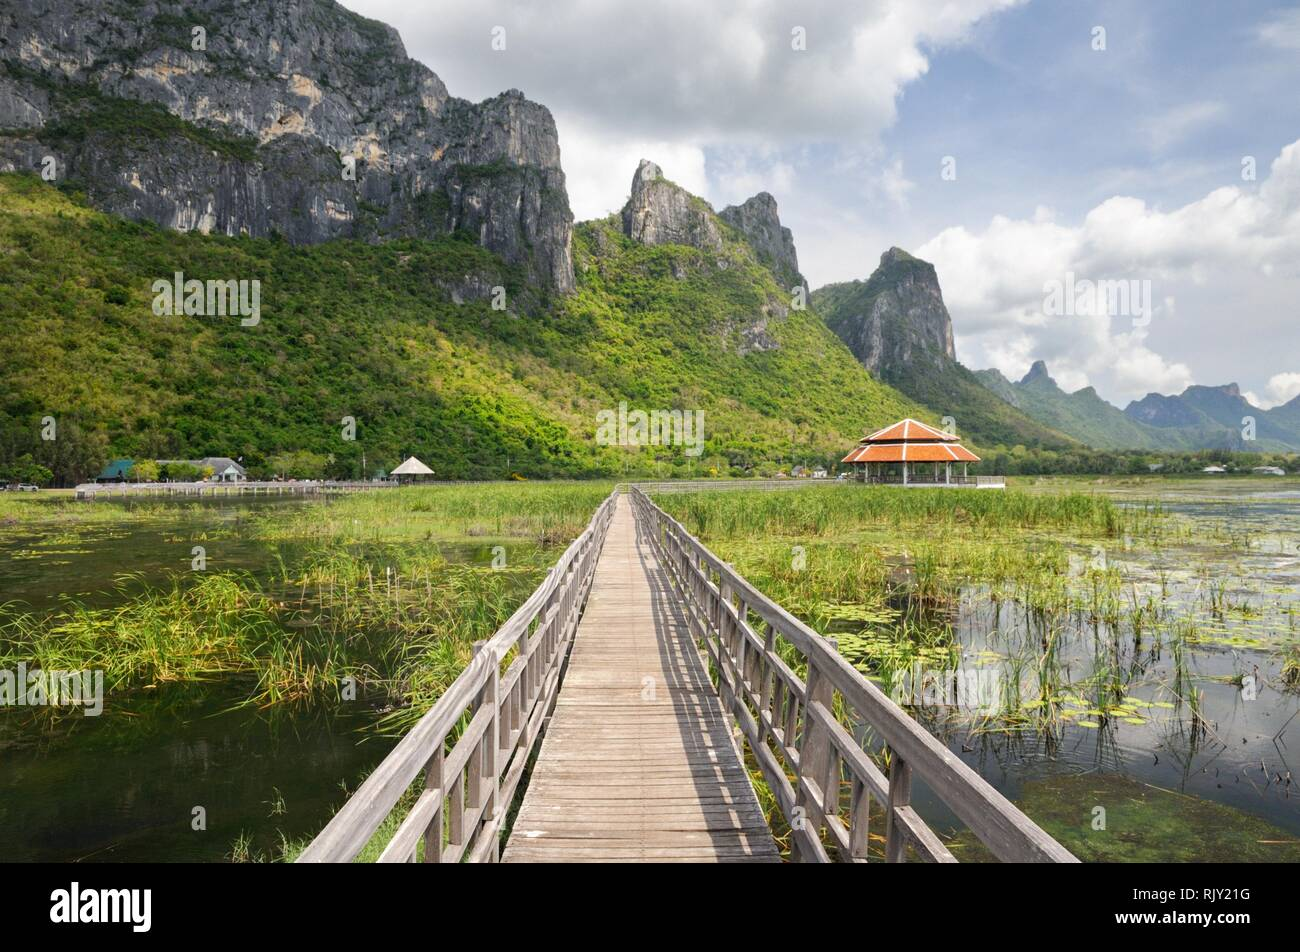 Wooden footpath through wetlands and swamp covered with water lily and reed at the foot of the mountain in Khao Sam Roi Yot National Park in Thailand Stock Photo